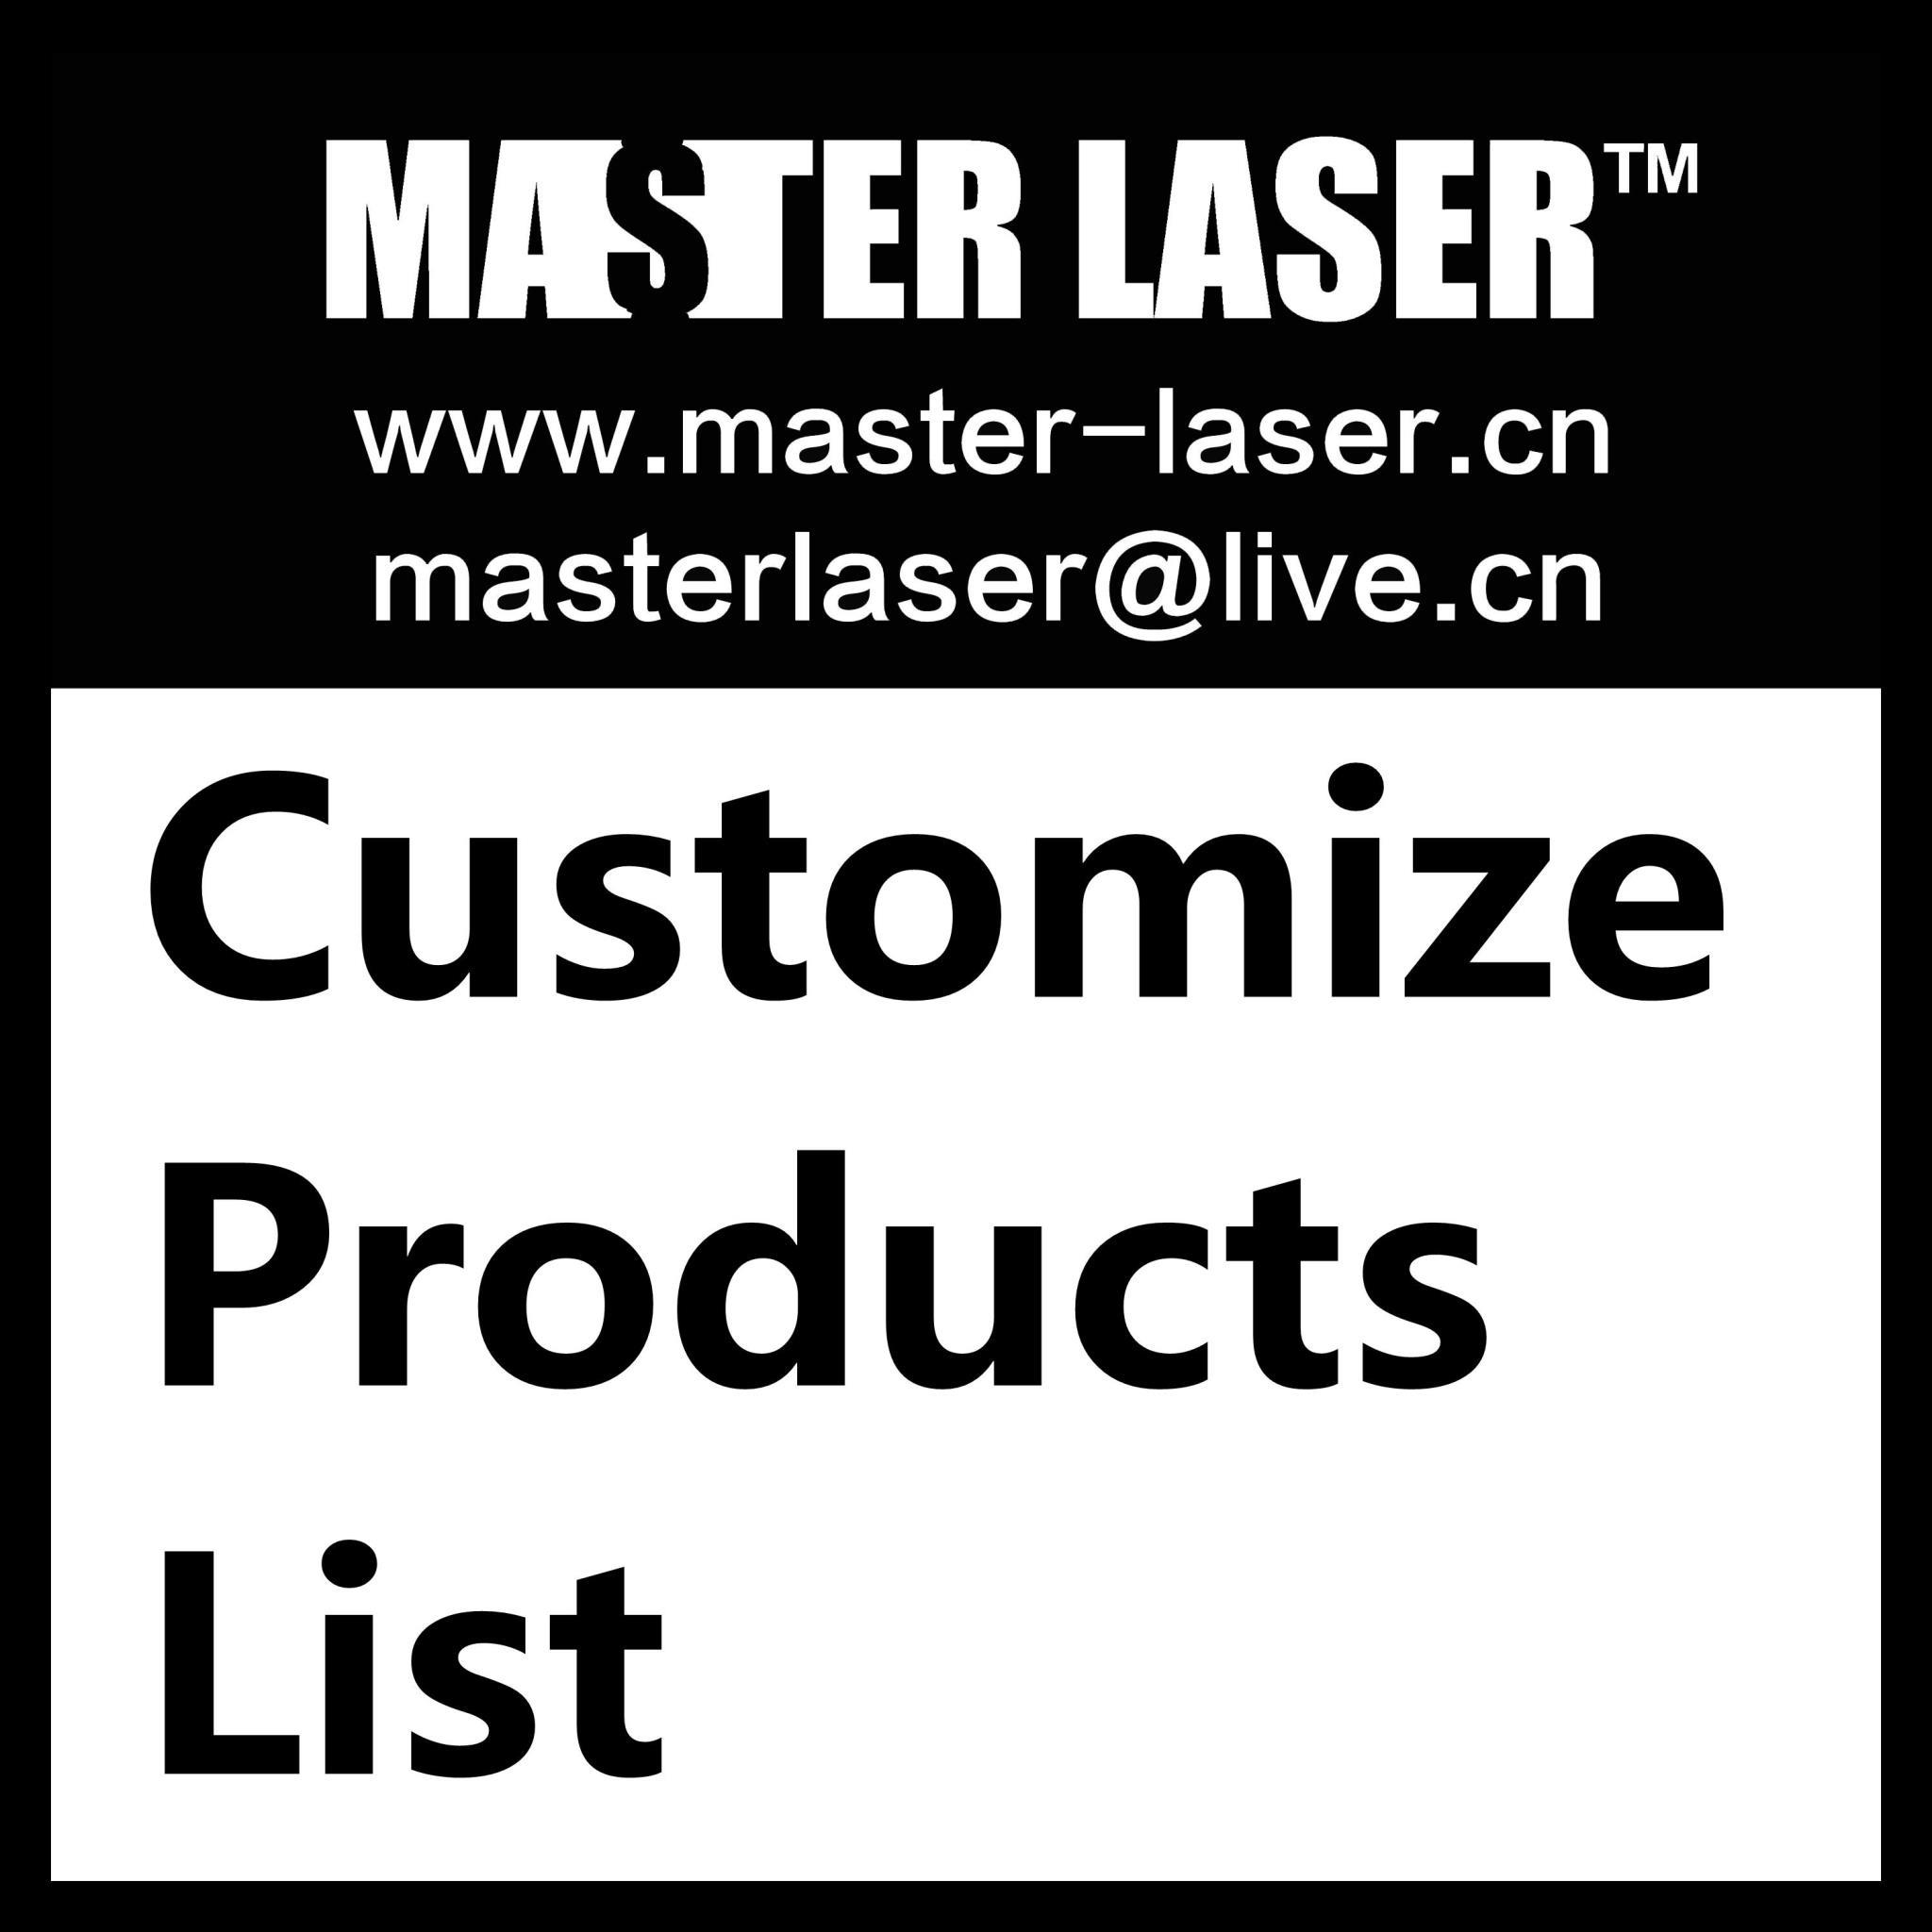 Customized Orders 009 Master Laser